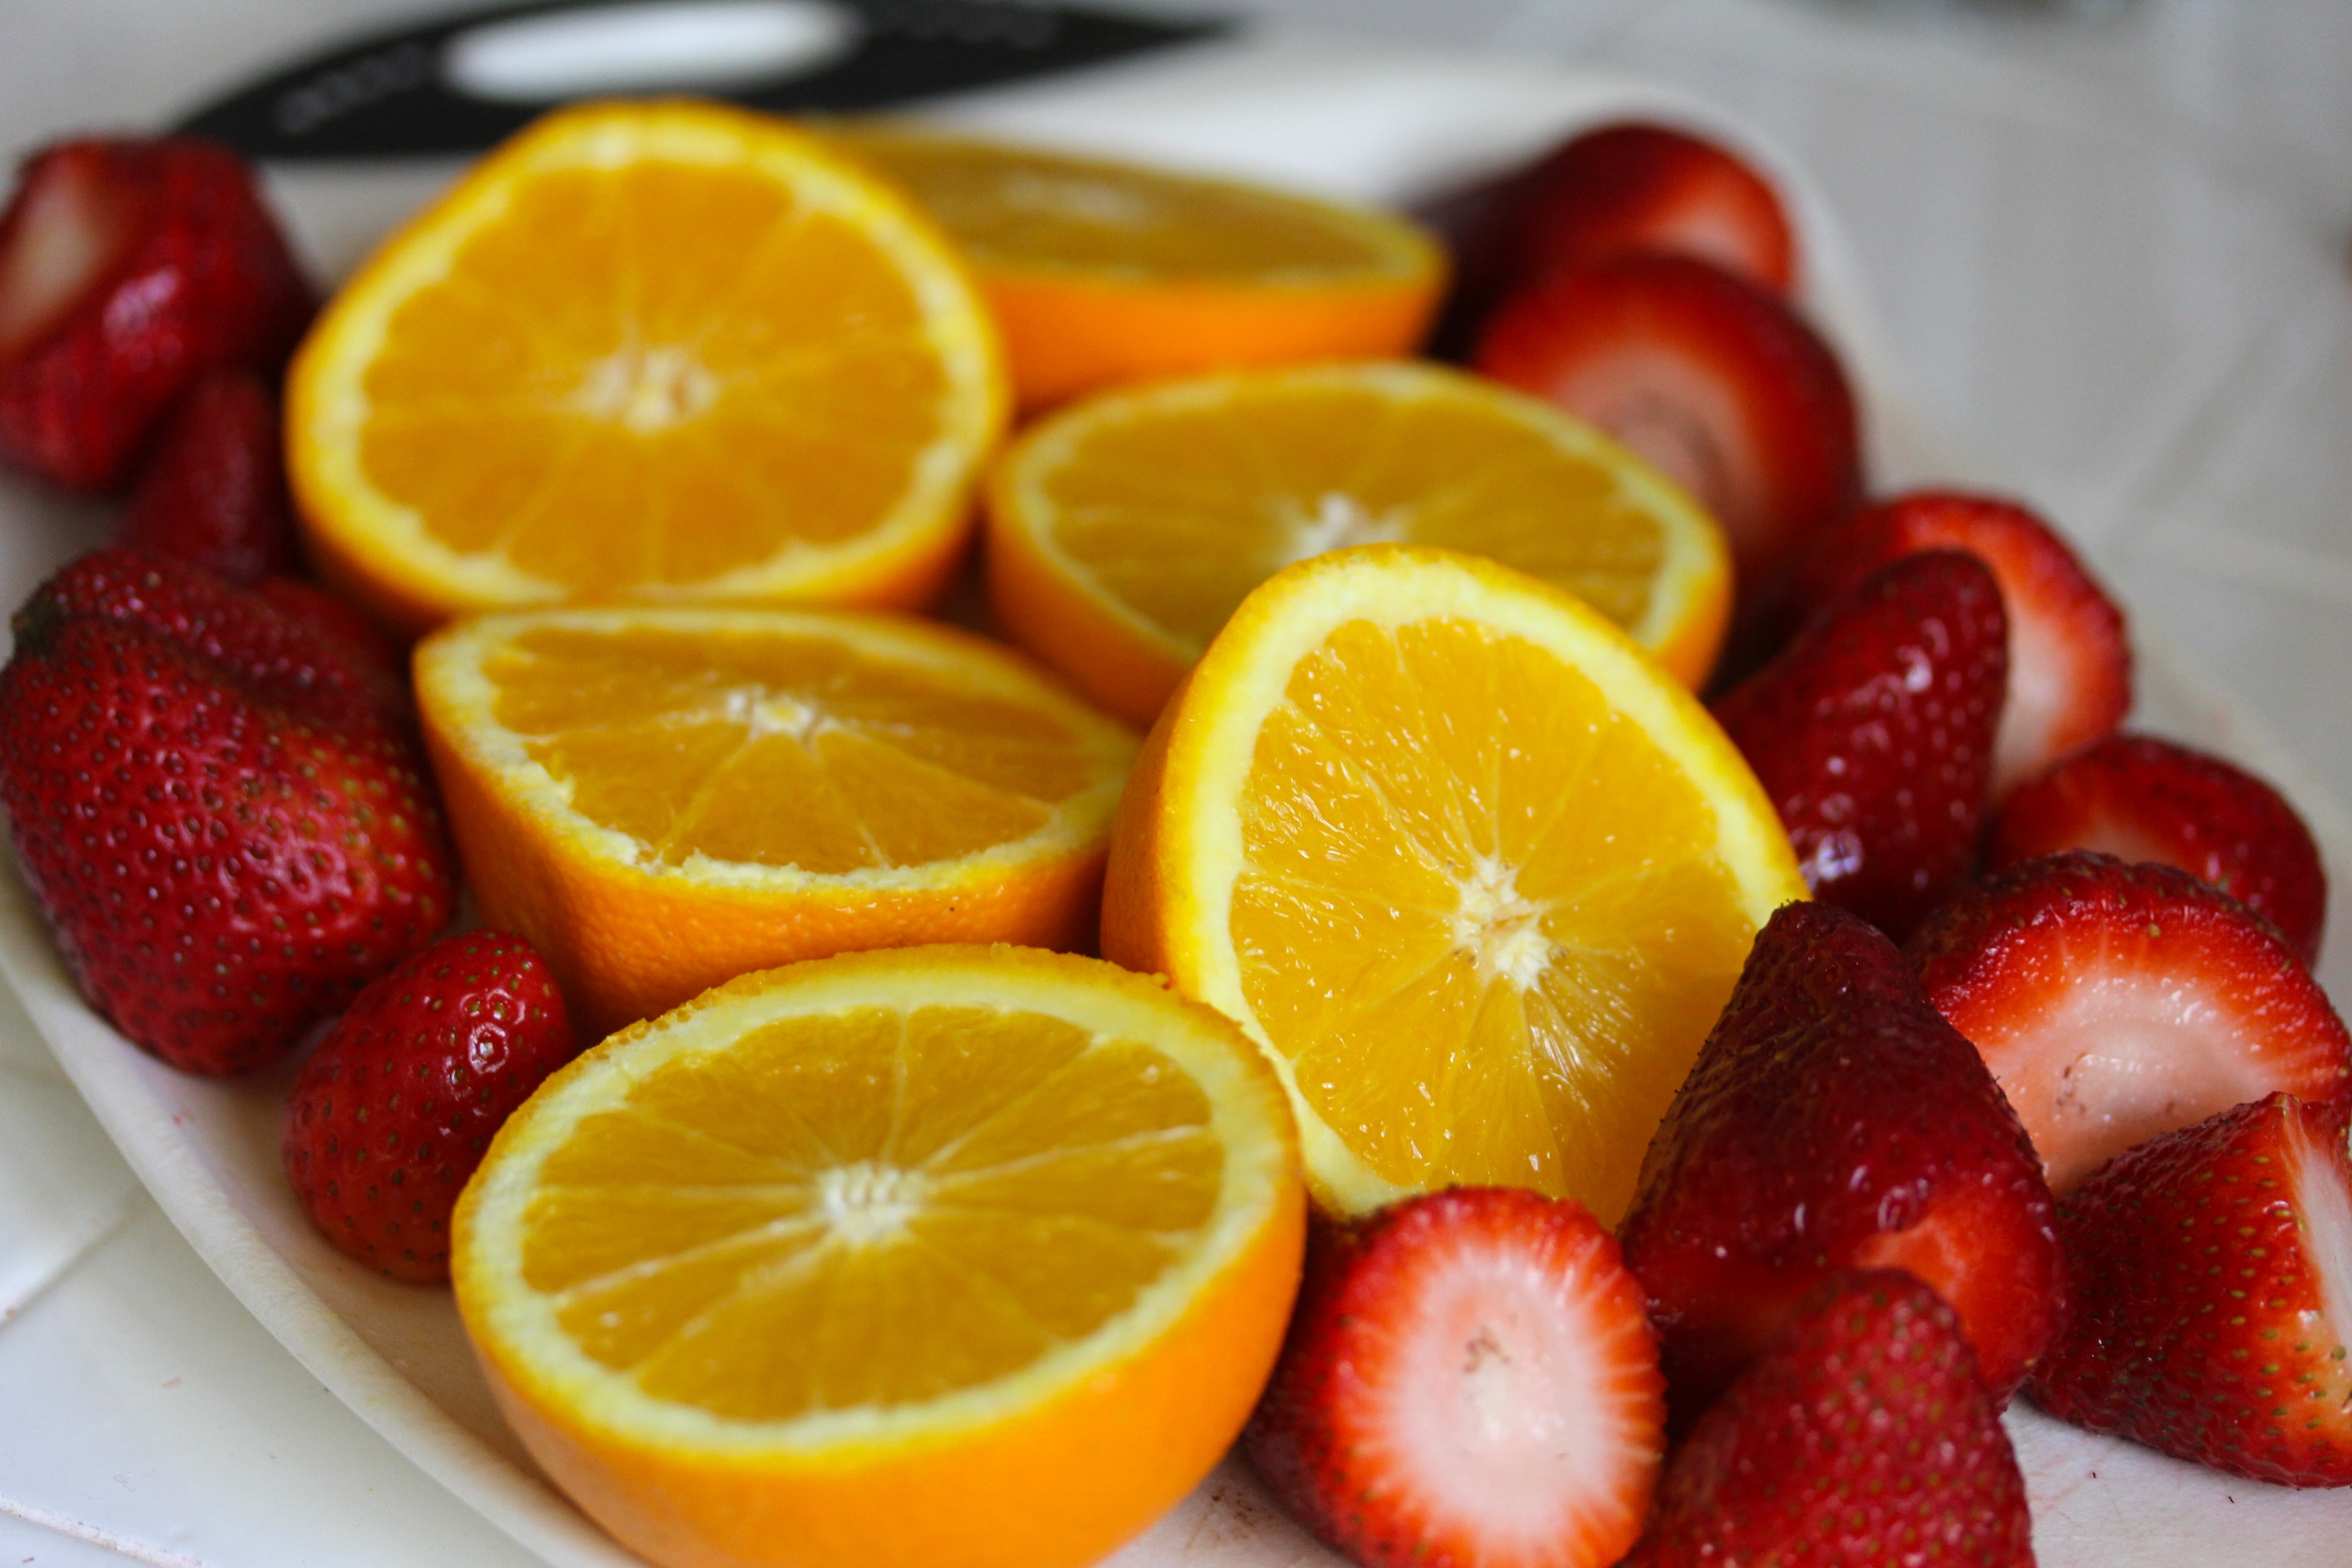 Image result for strawberries and oranges